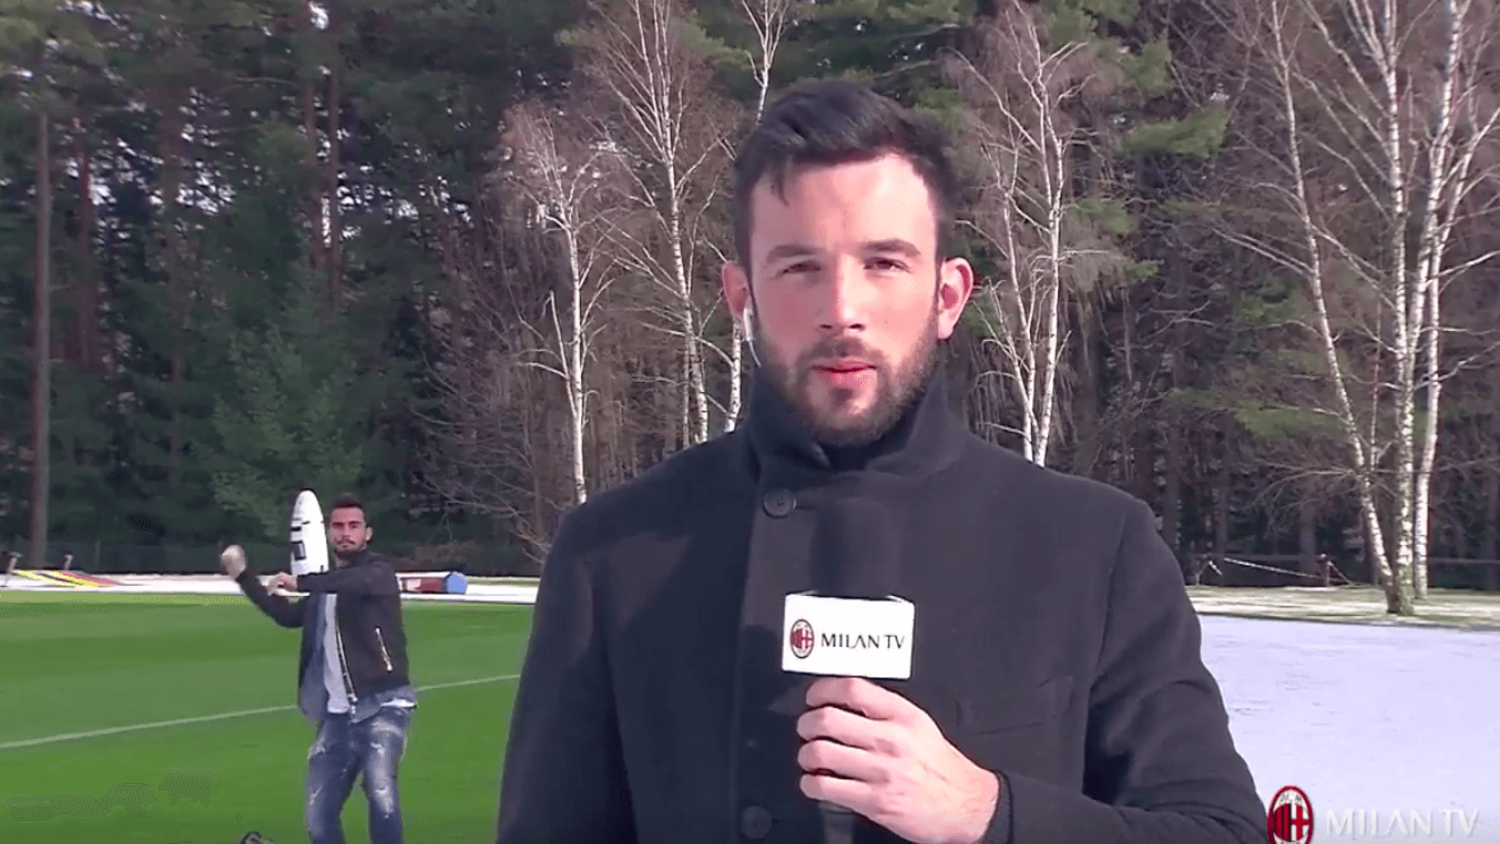 AC Milan's Suso nails journalist with snowball during training